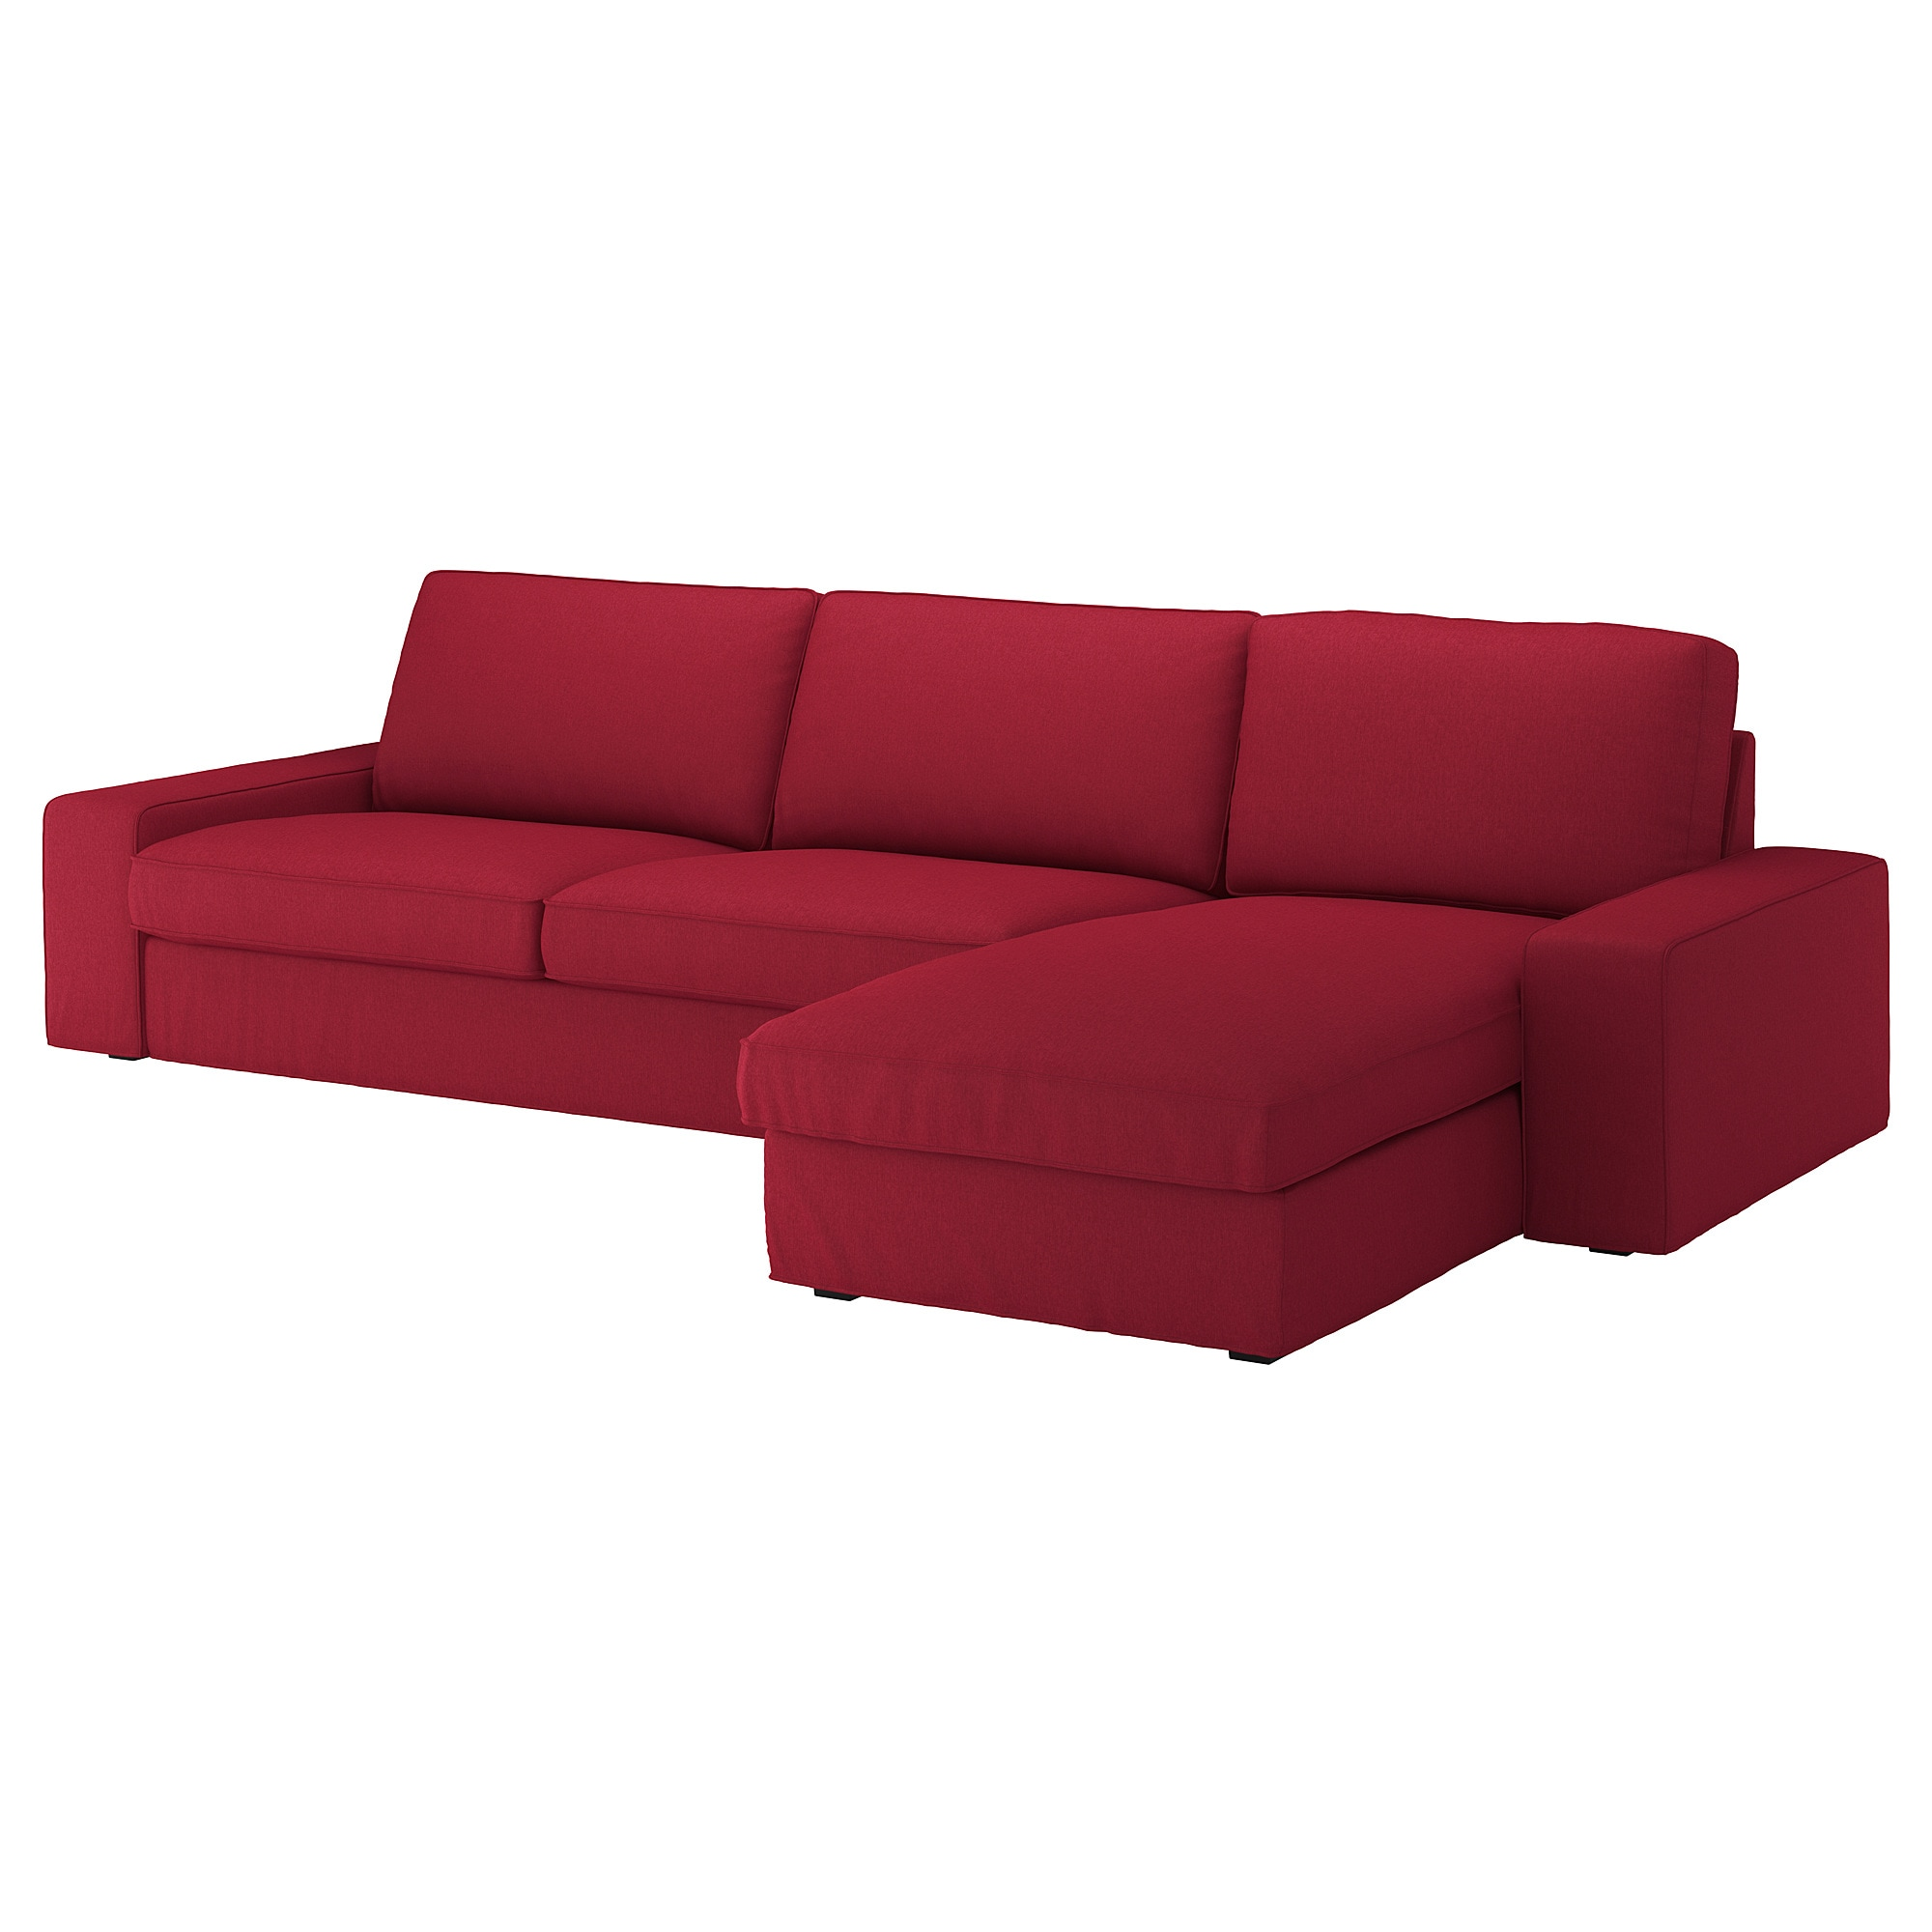 full mini sectional reclining sofa choosing best the with oversized suede couch size couches chaise living of navy around room modular wrap